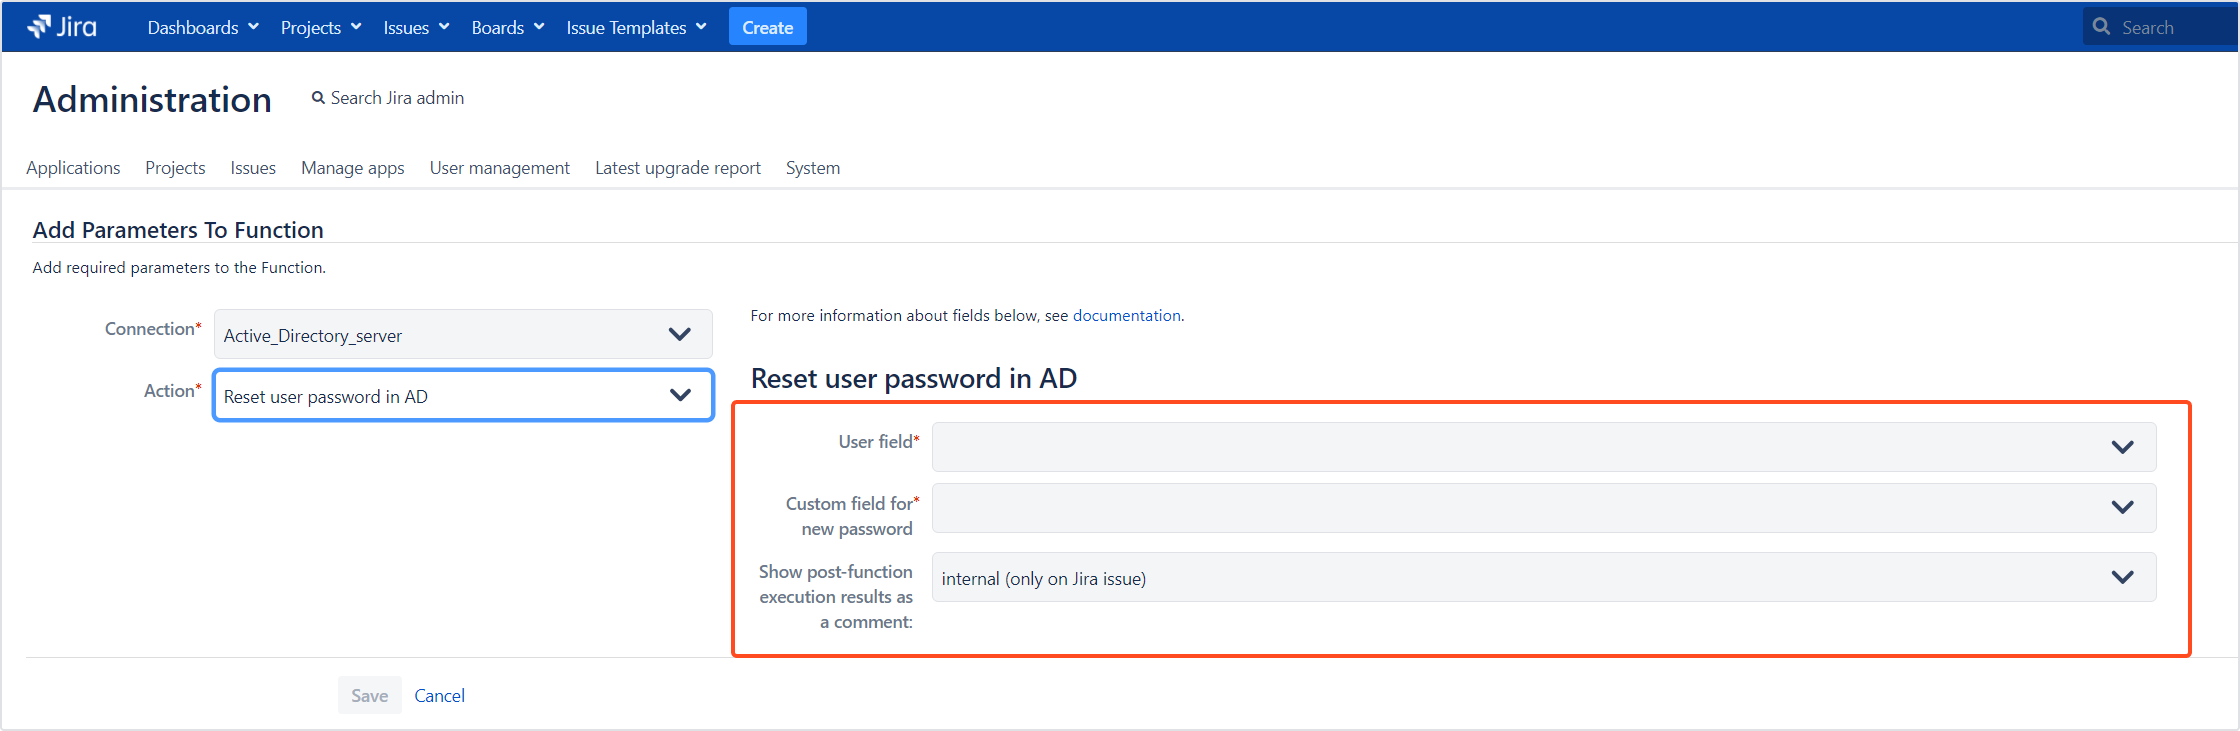 Active Directory Attributes Sync for Jira - Update Data: Reset user password in AD